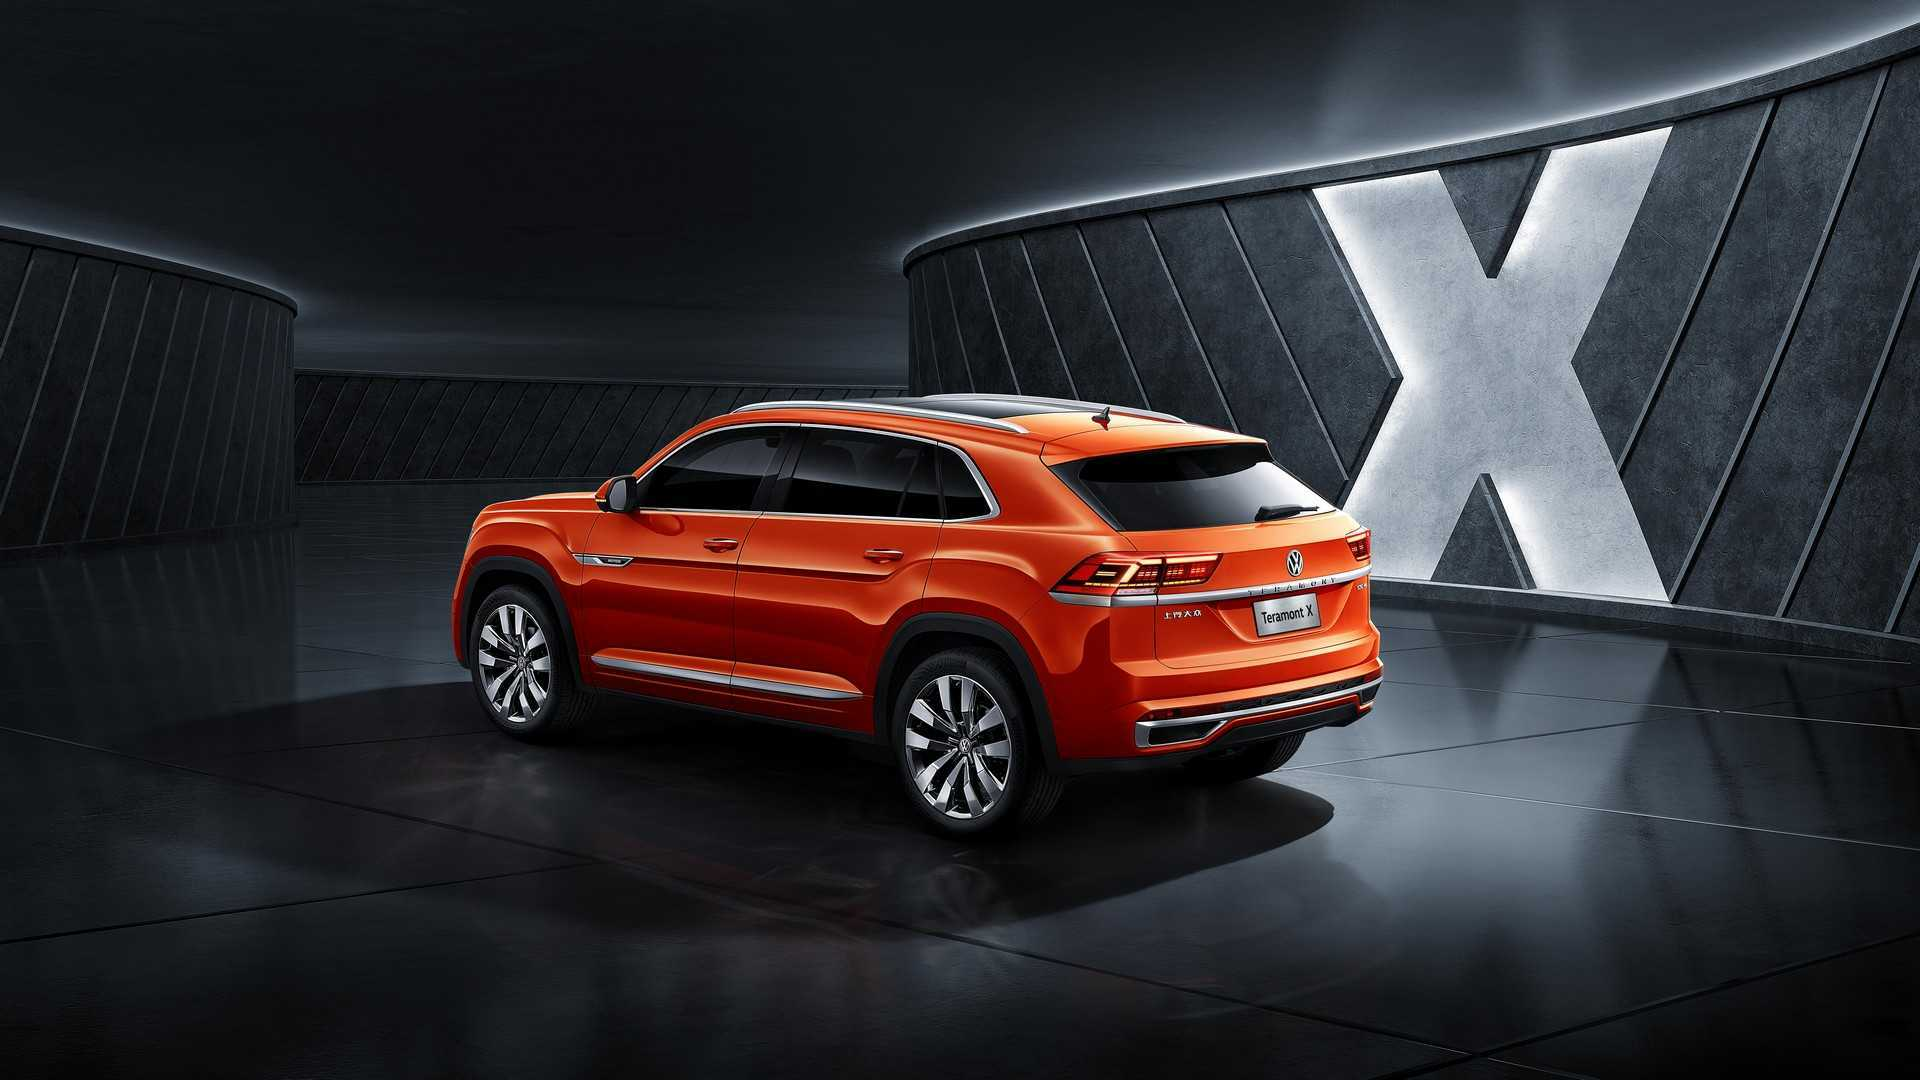 2019 Auto Shanghai Lighted Up With The Launch Of Volkswagen Teramont SUV Coupe!  - Volkswagen Hyderabad - Mody Auto Group